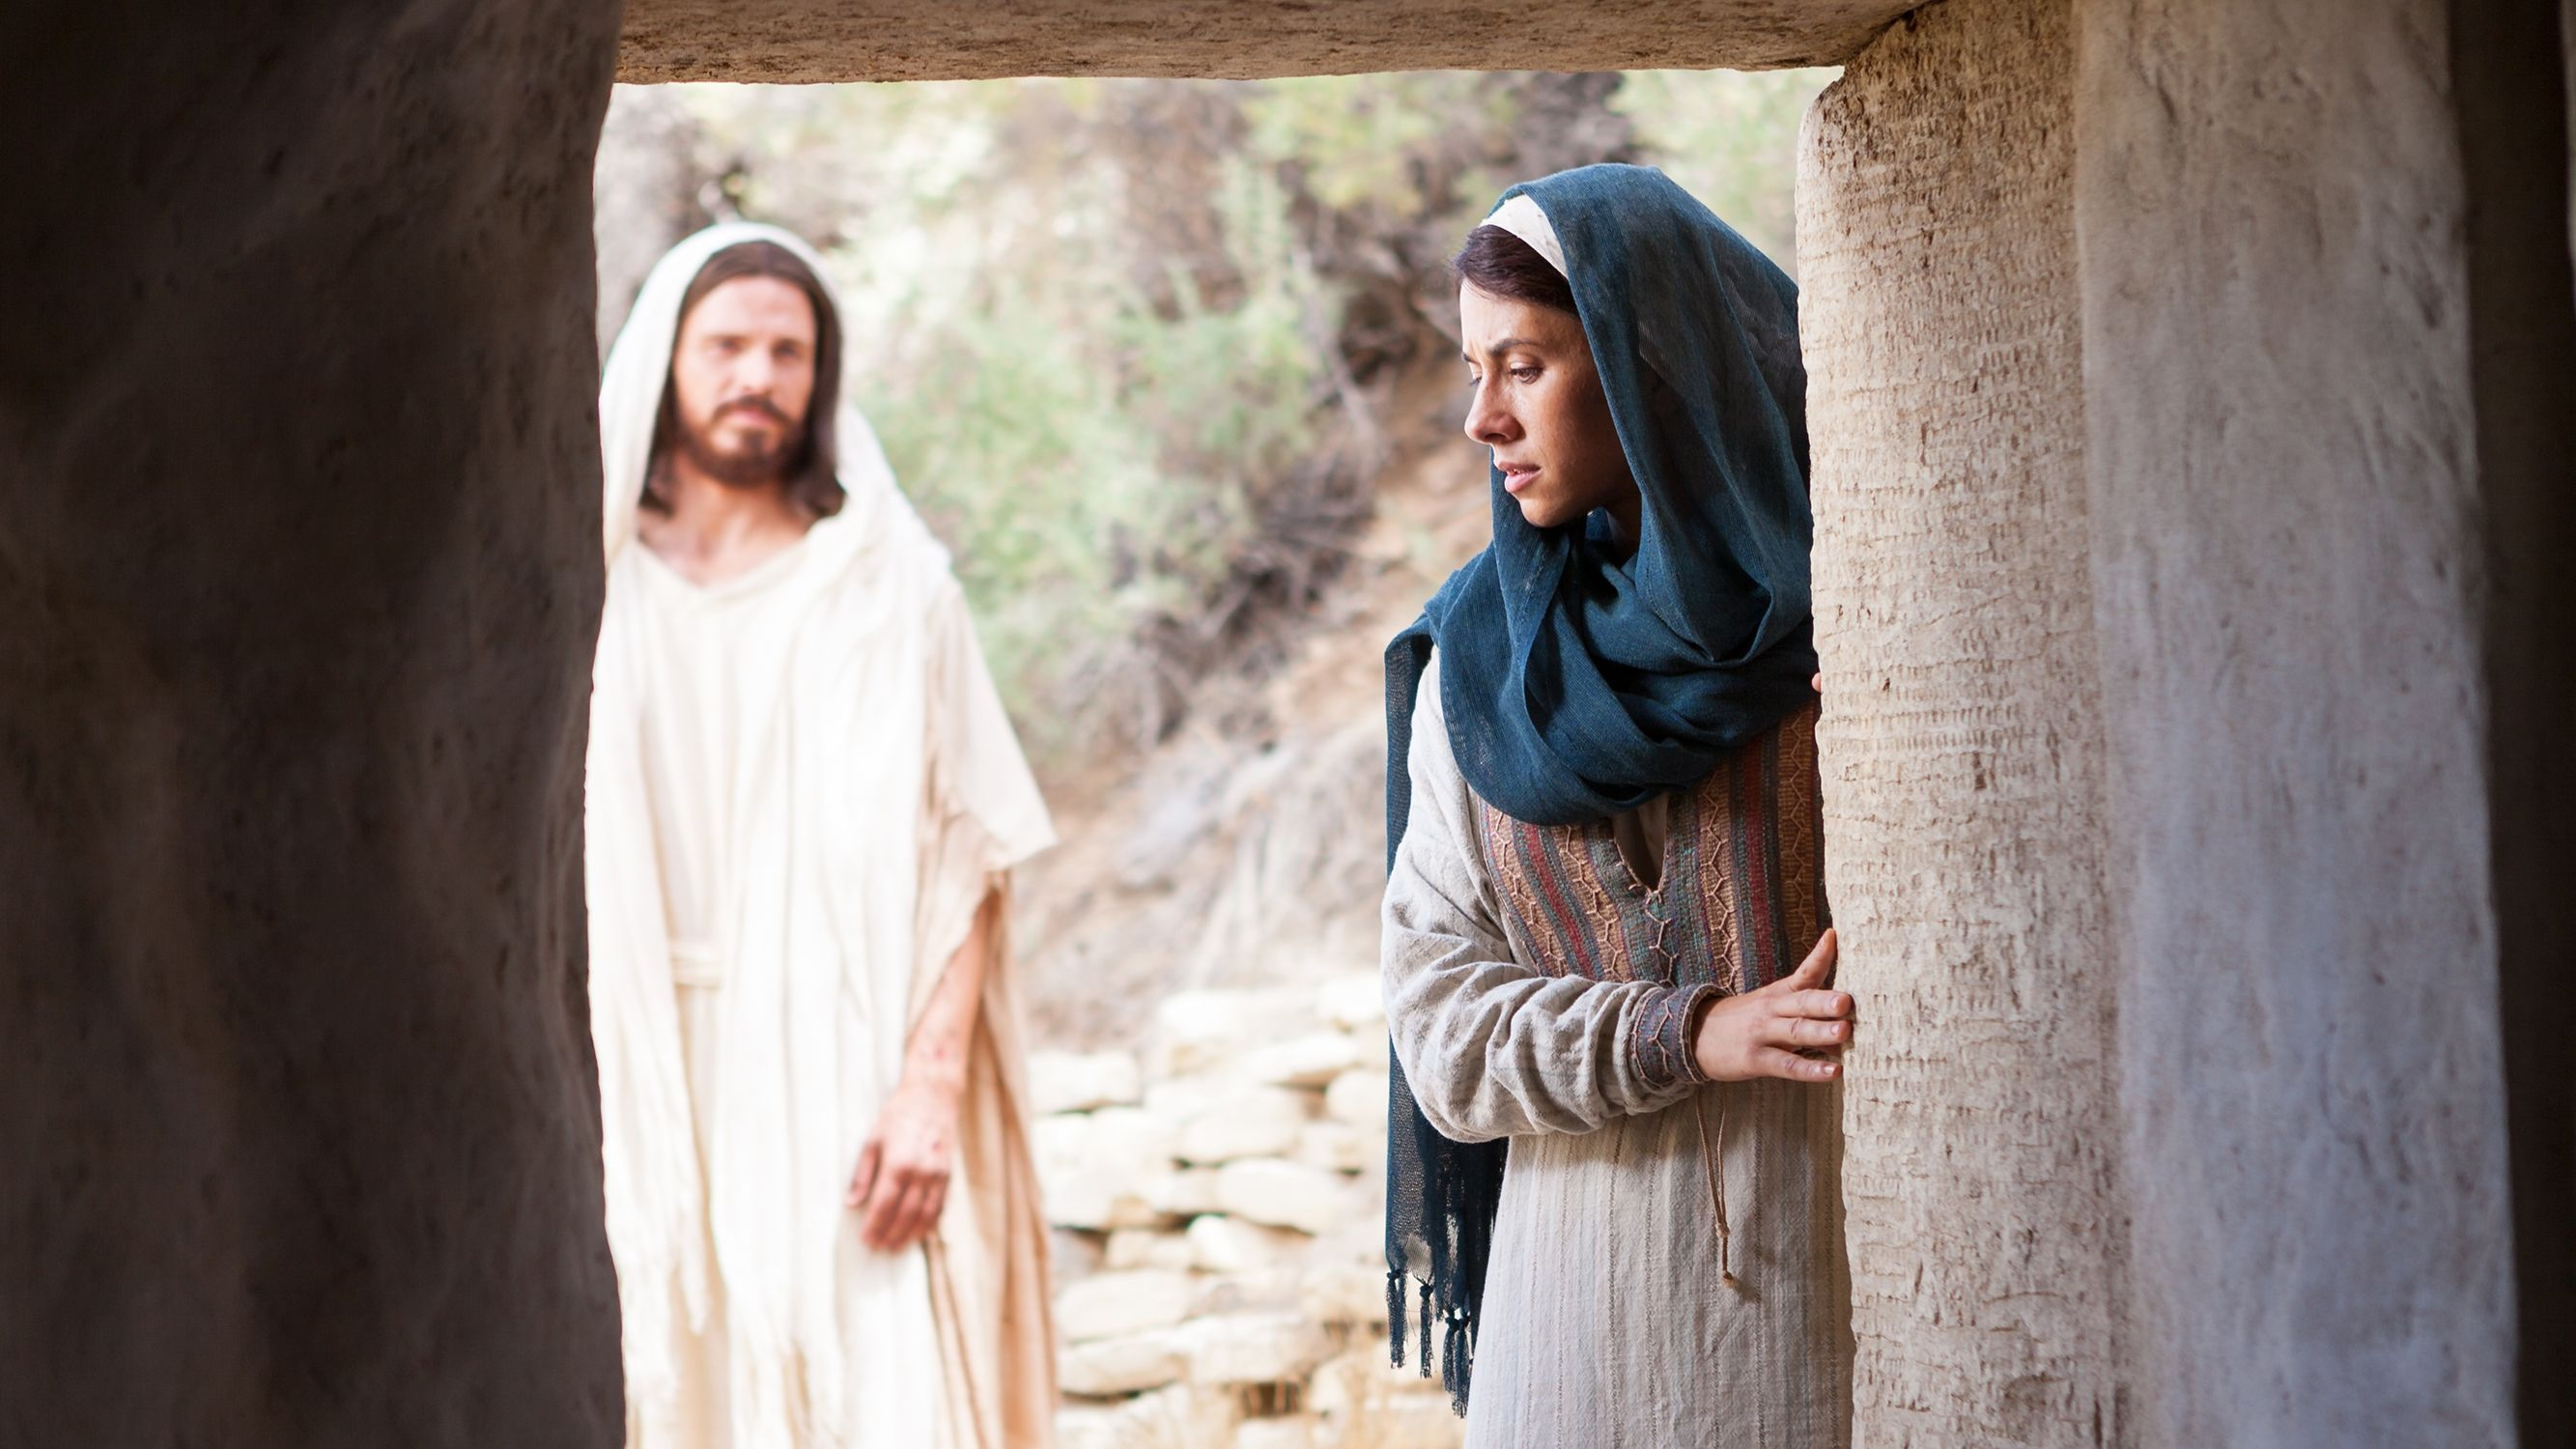 Holy Week - Easter Sunday | ComeUntoChrist.org